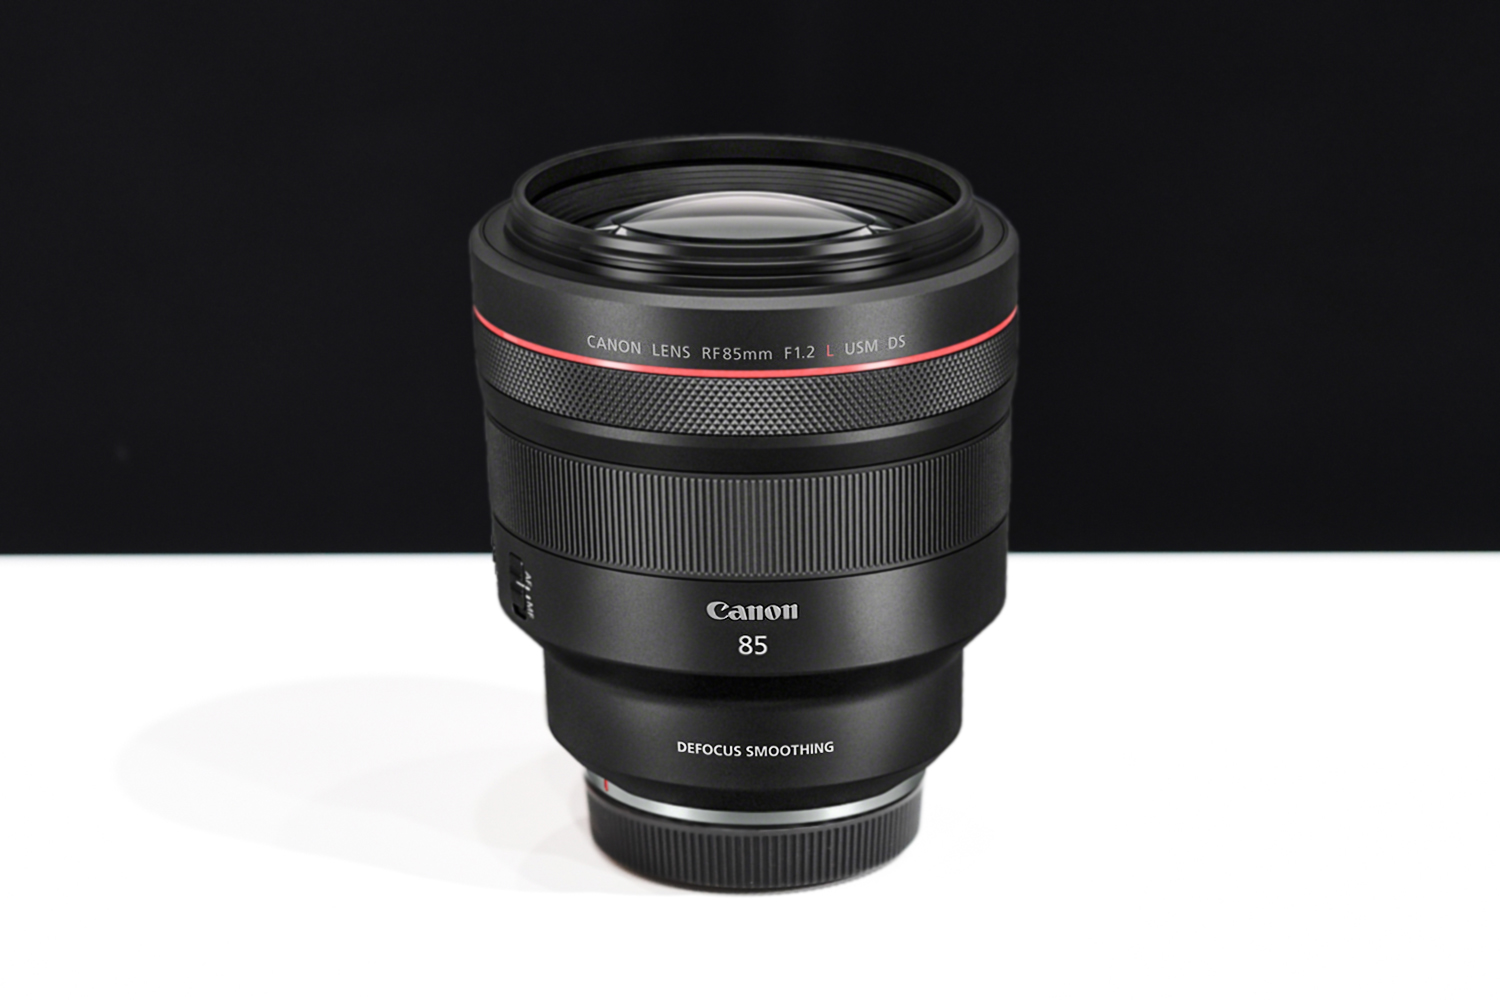 """Canon RF 85mm f/1.2L USM DS first look: """"absolutely not a Soft Focus lens"""""""